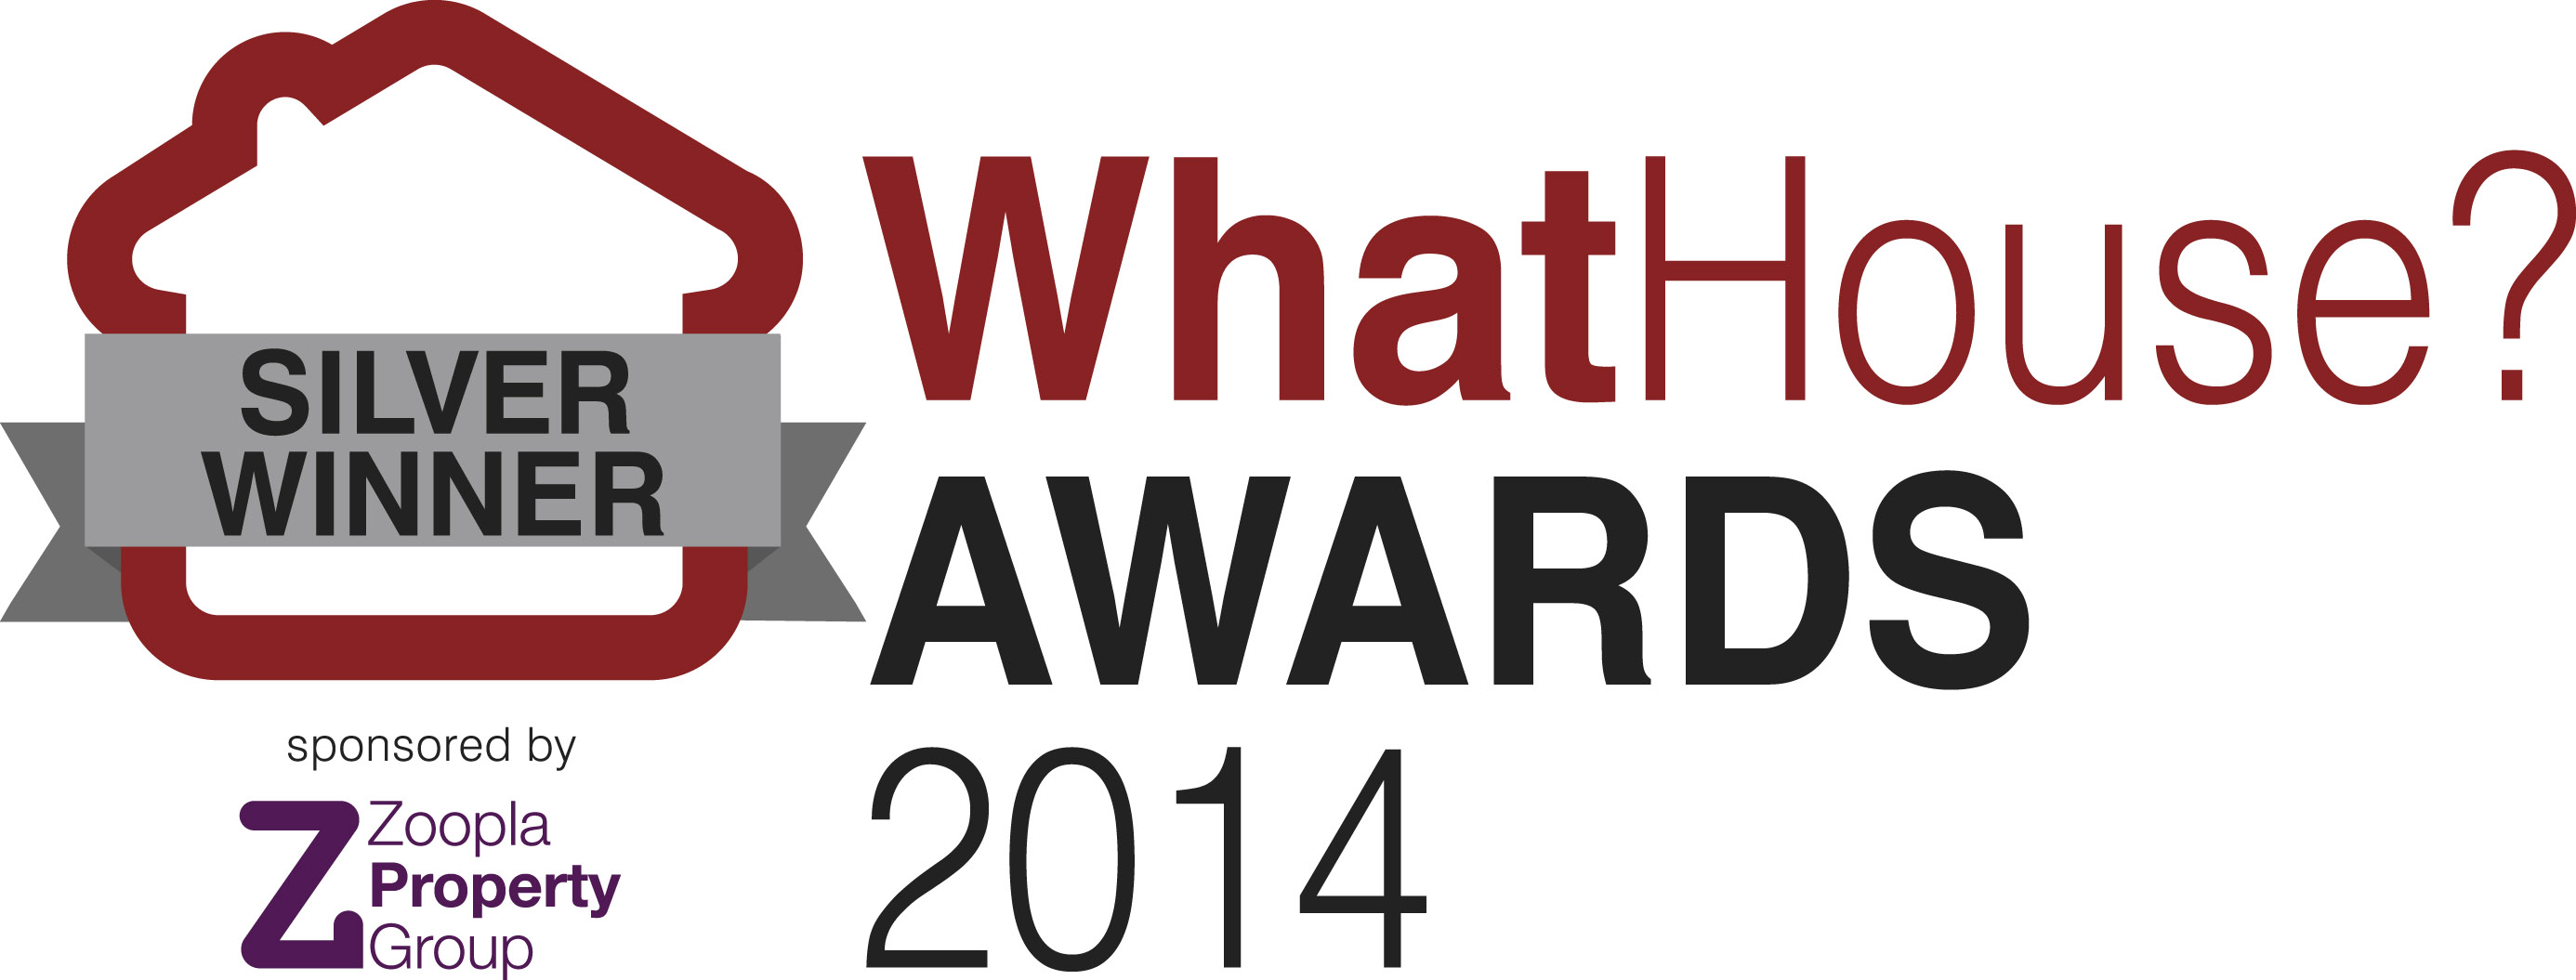 WhatHouse? Awards Winner Silver 2014